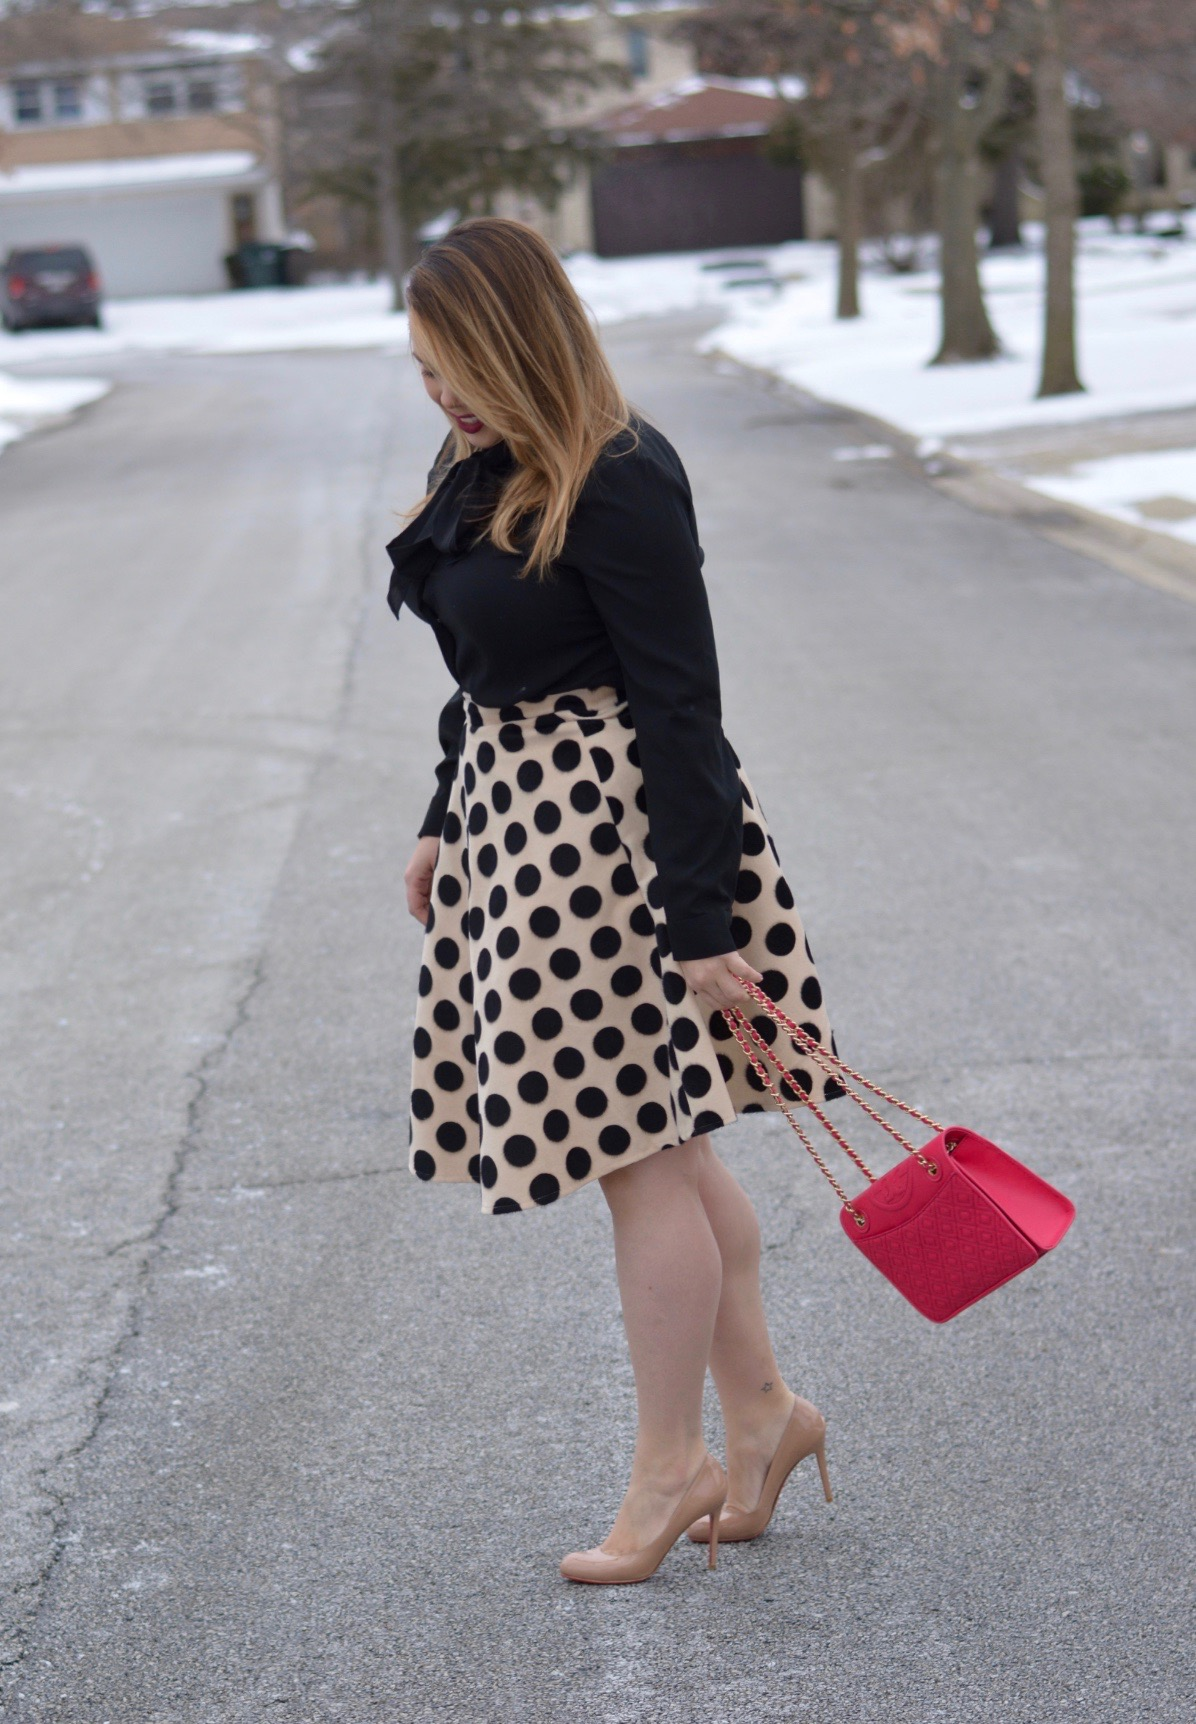 workwear wednesday- polka dot midi